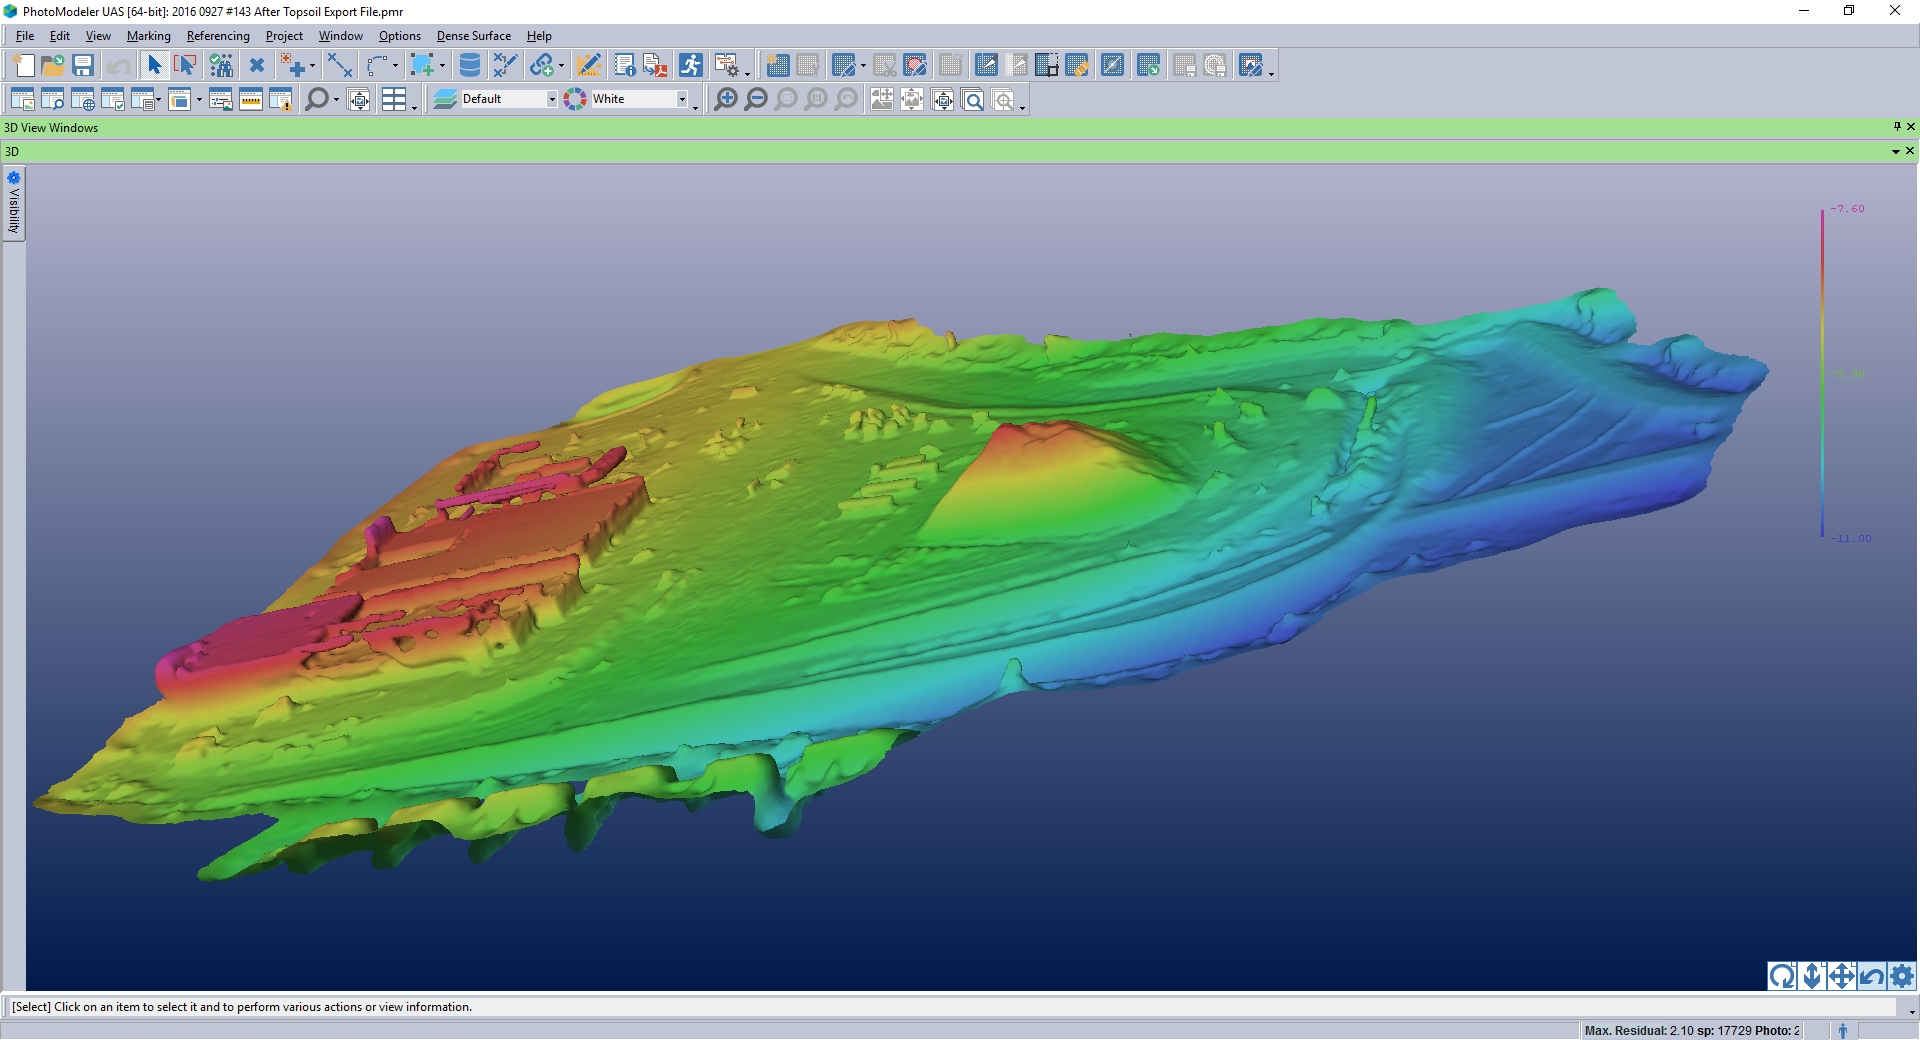 Eos Systems Brings Uas Focused Photogrammetry Software To